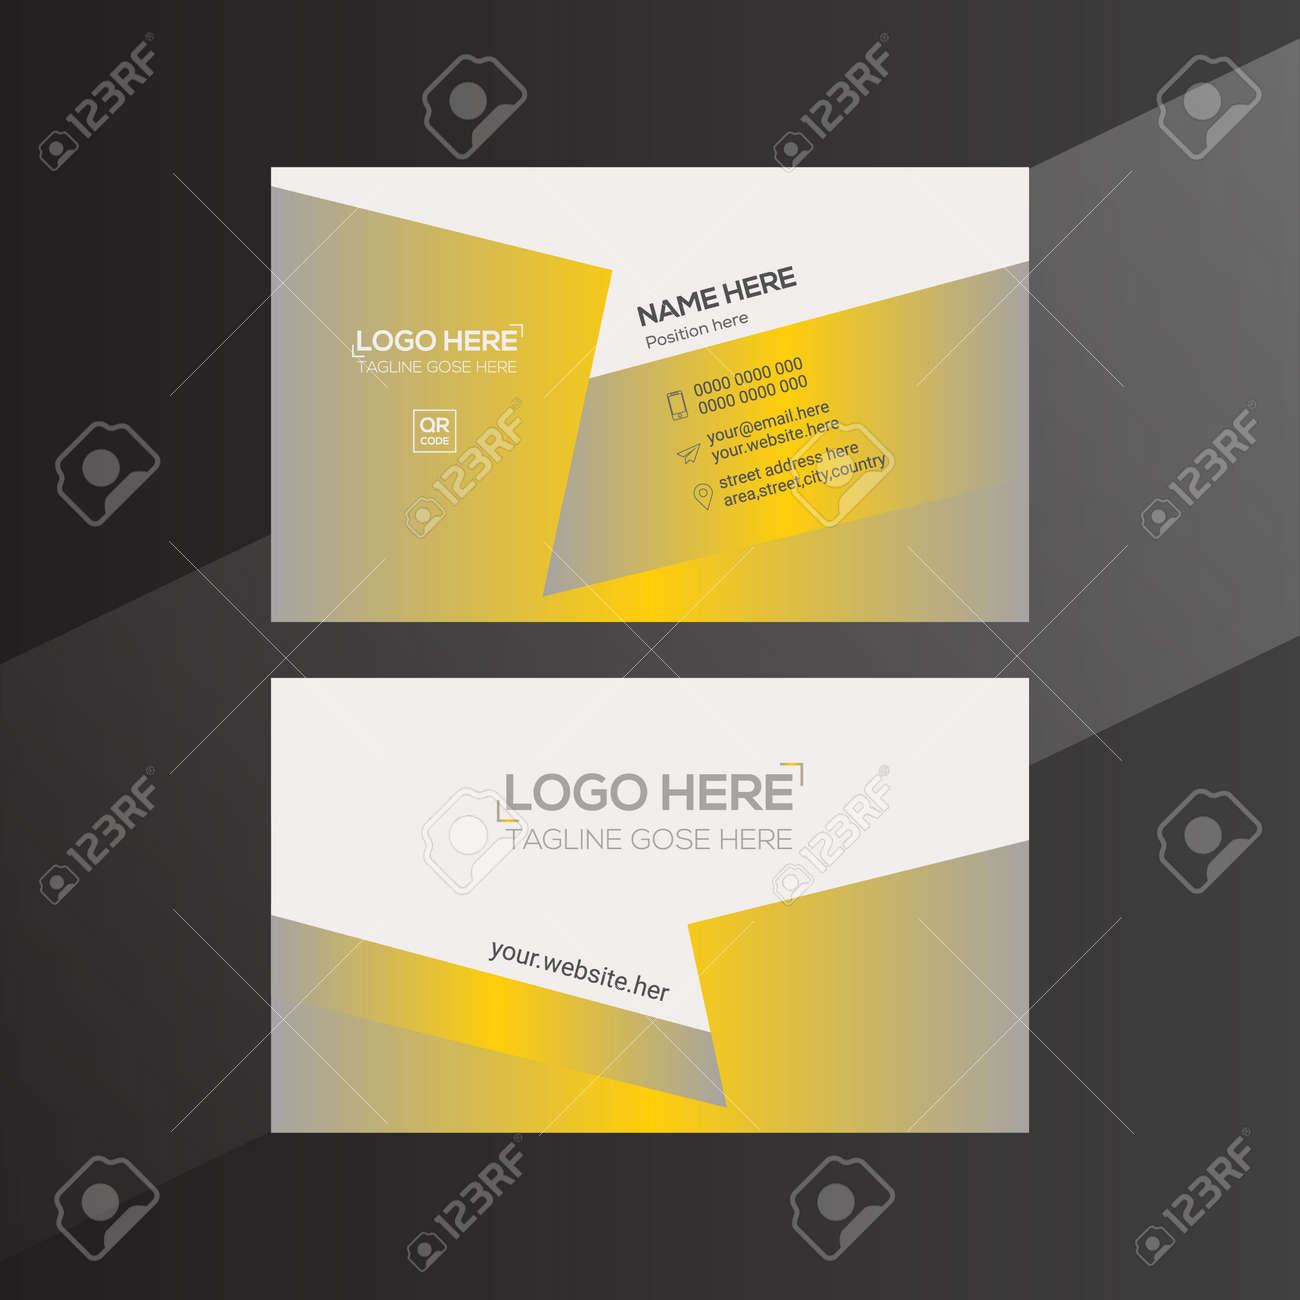 orange and gray colored vector business card design for any company use - 171795302